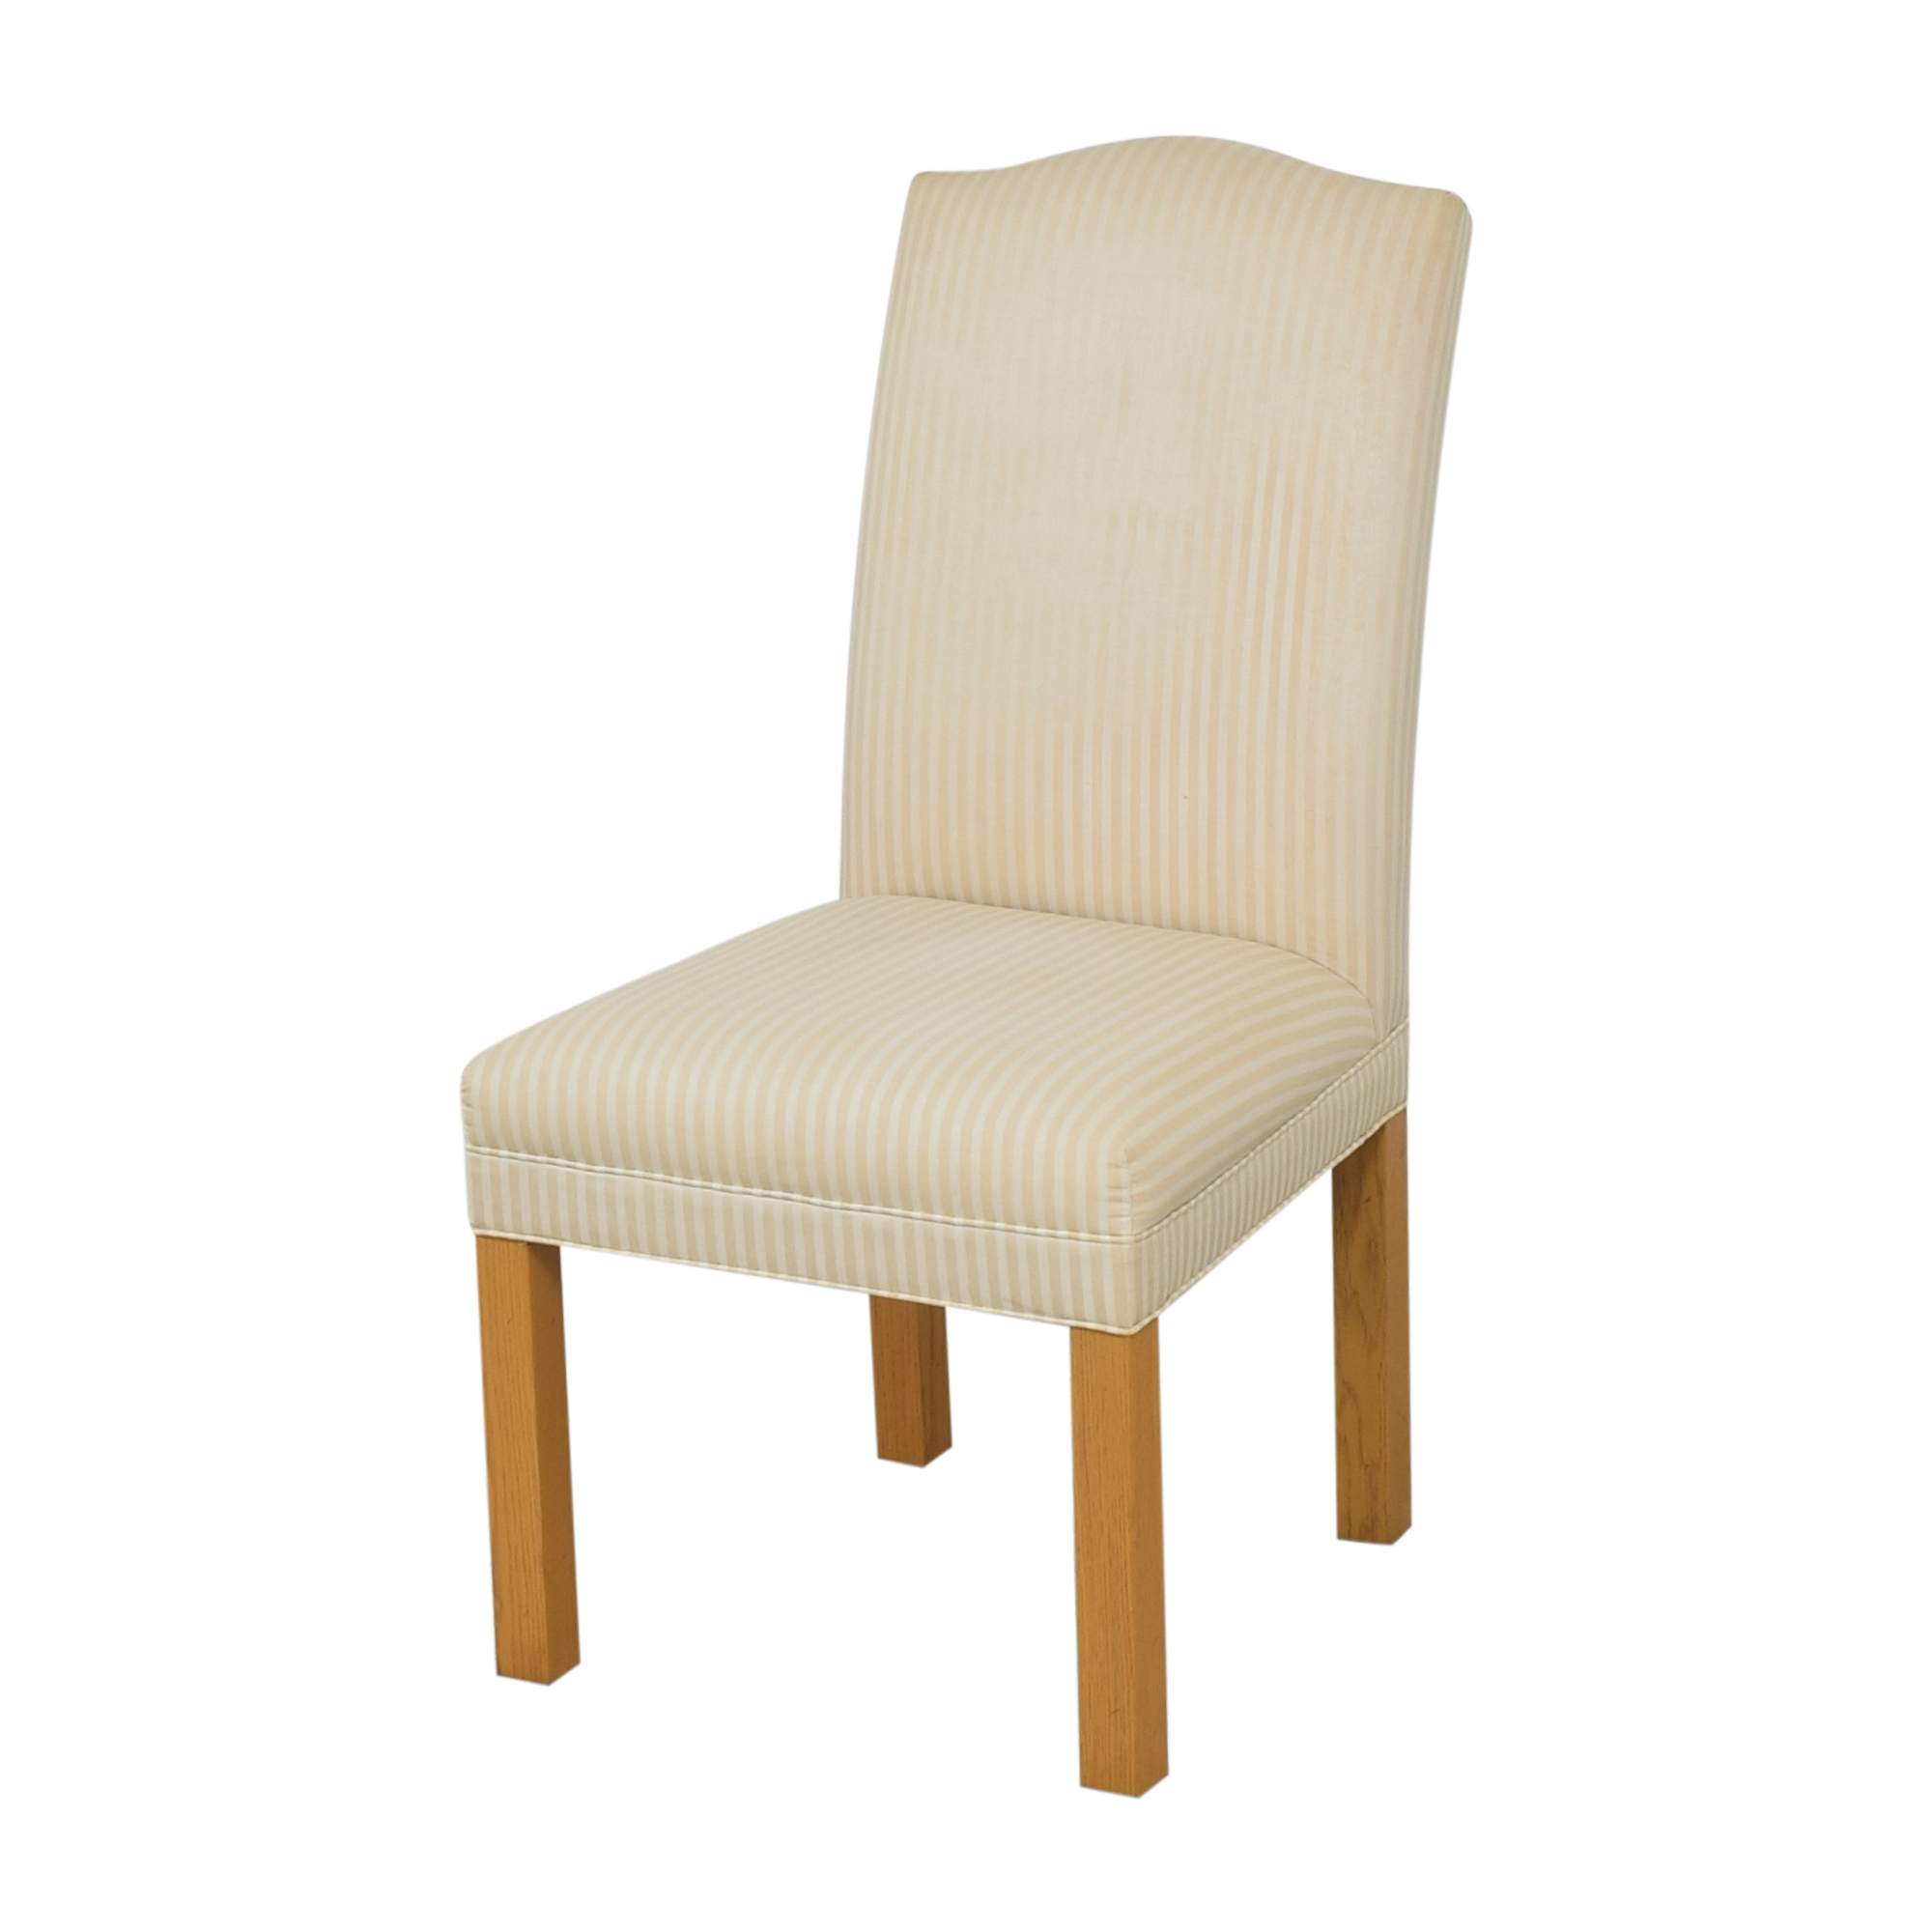 Lane Furniture Upholstered Dining Side Chairs / Chairs